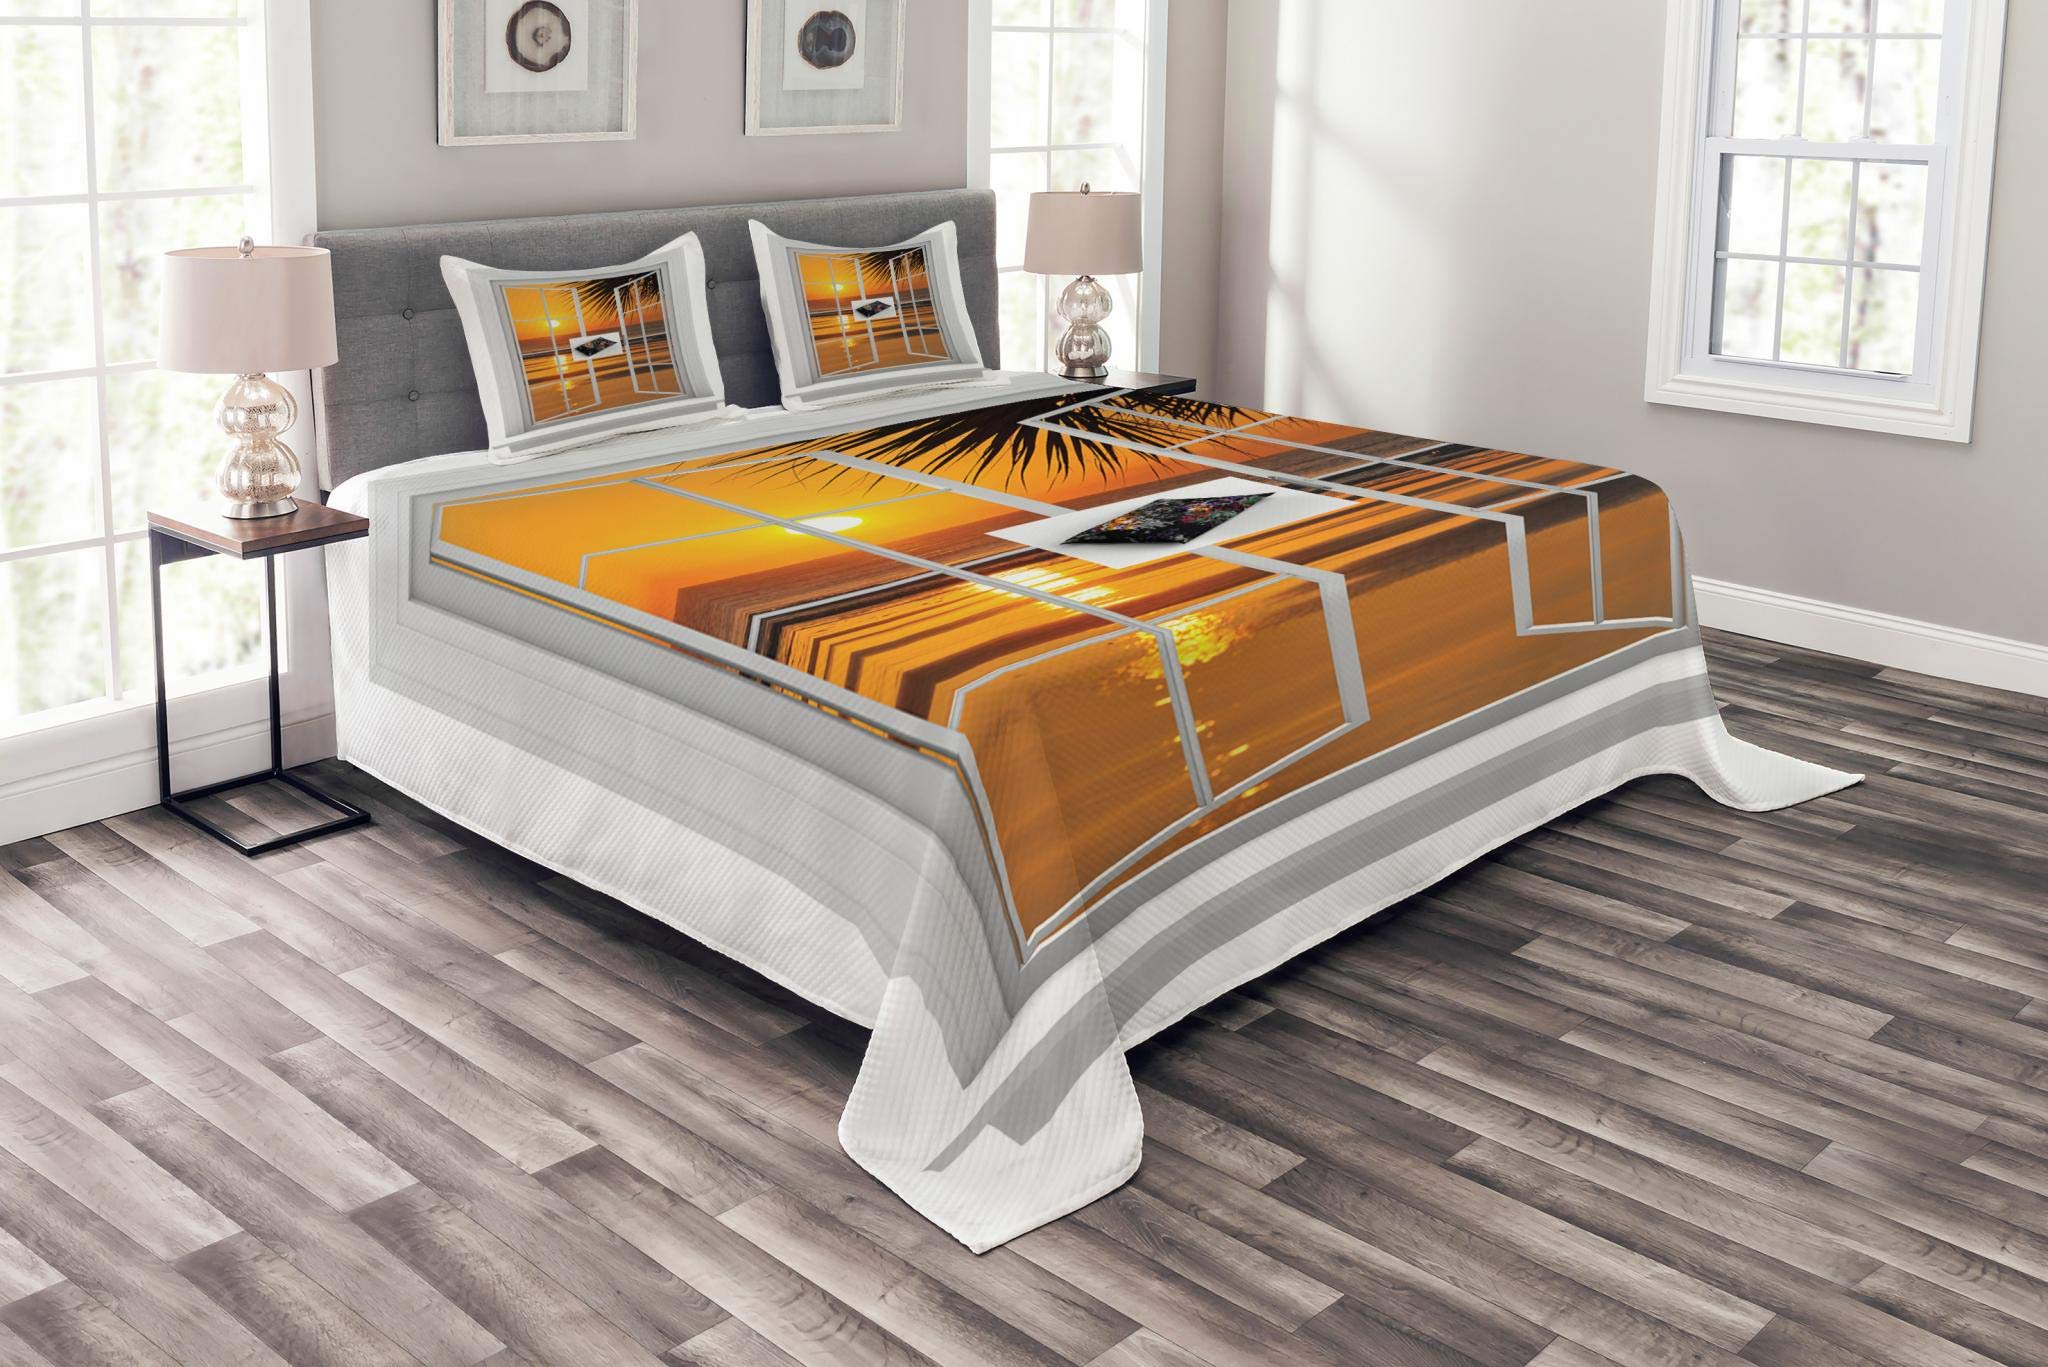 Ambesonne Ocean Bedspread Set Queen Size, Open Window with an Ocean Sunset View Sky Tropics Nature Vacation Romantic Art Print, Decorative Quilted 3 Piece Coverlet Set with 2 Pillow Shams, Apricot